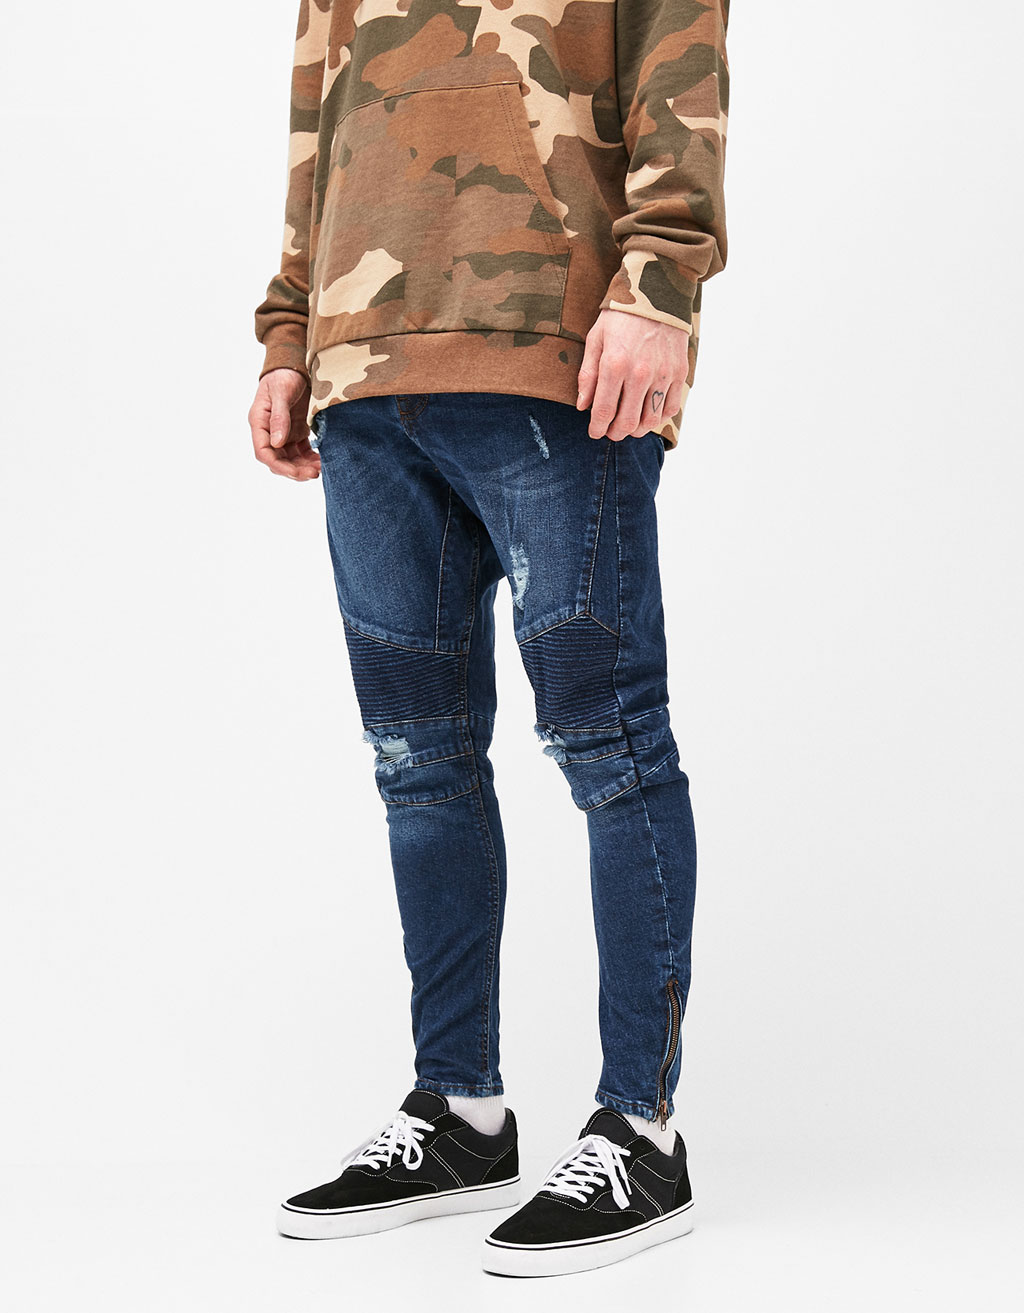 Arc fit jeans with zips